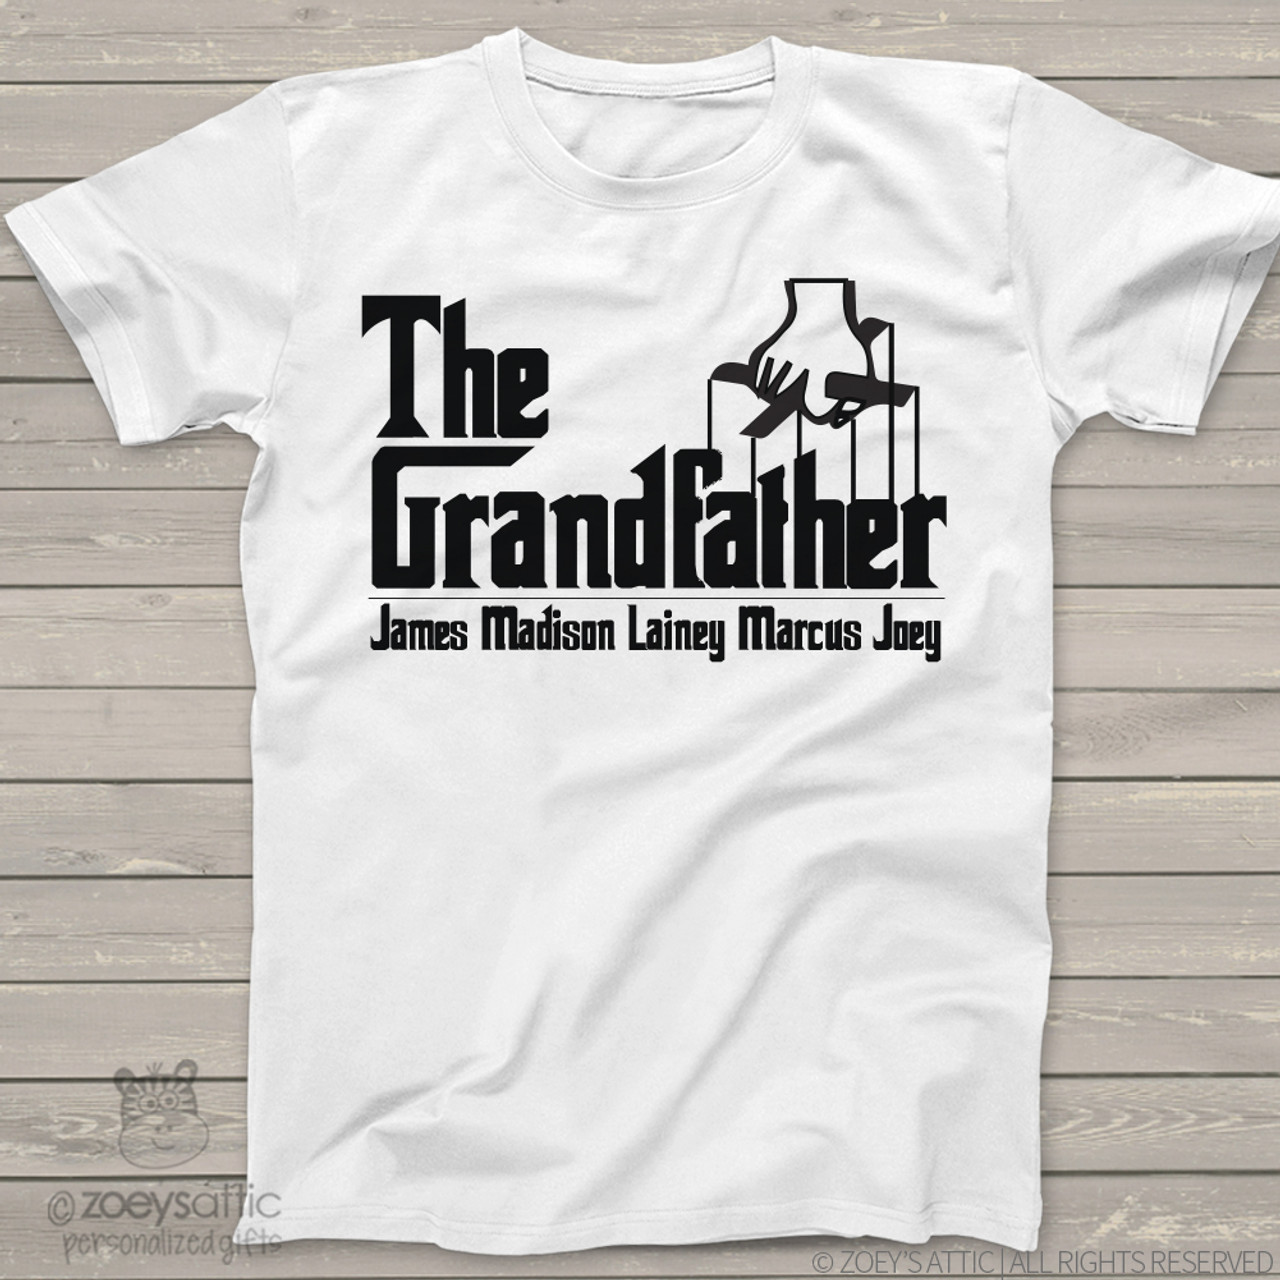 77cf93bb personalized mens shirt, The Grandfather shirt personalized t-shirt